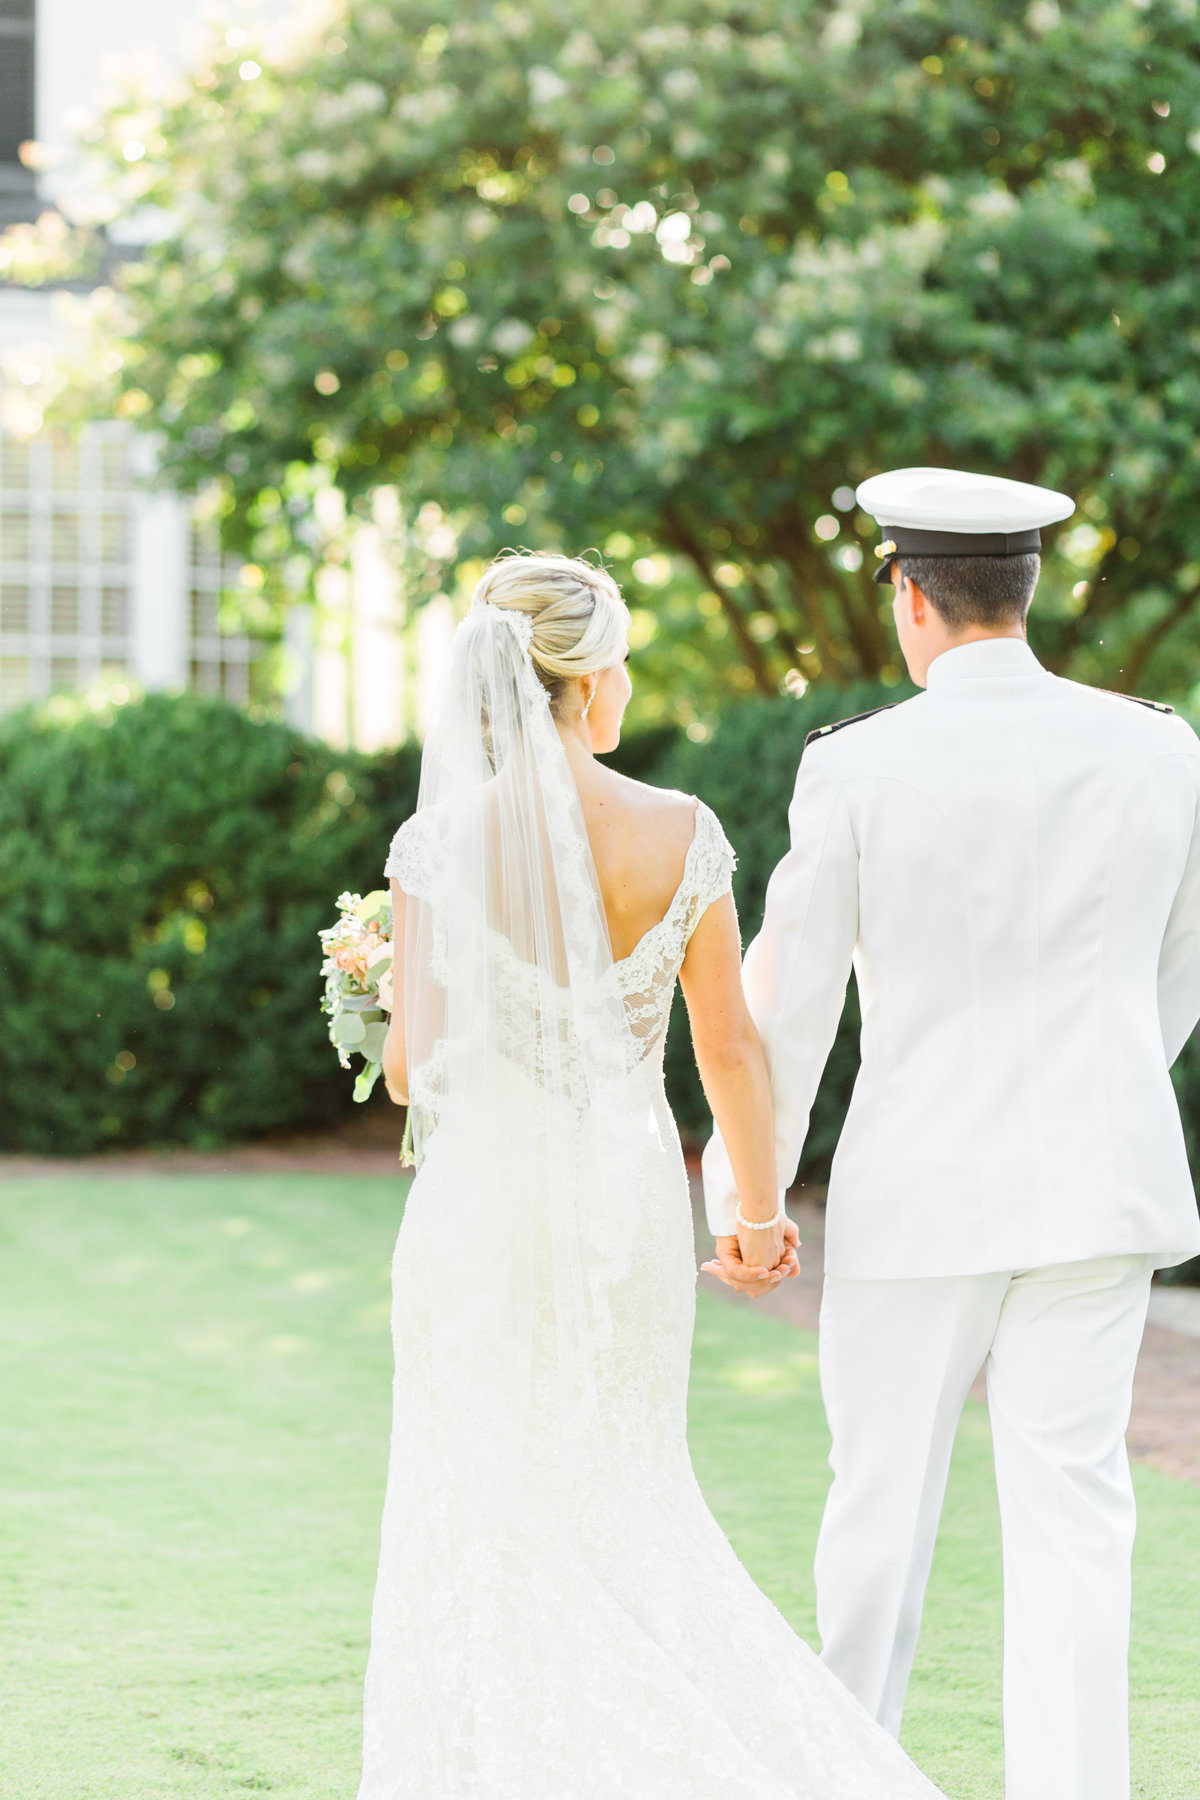 Deidre-Kevin-Sweet-Southern-Estate-Wedding-5849